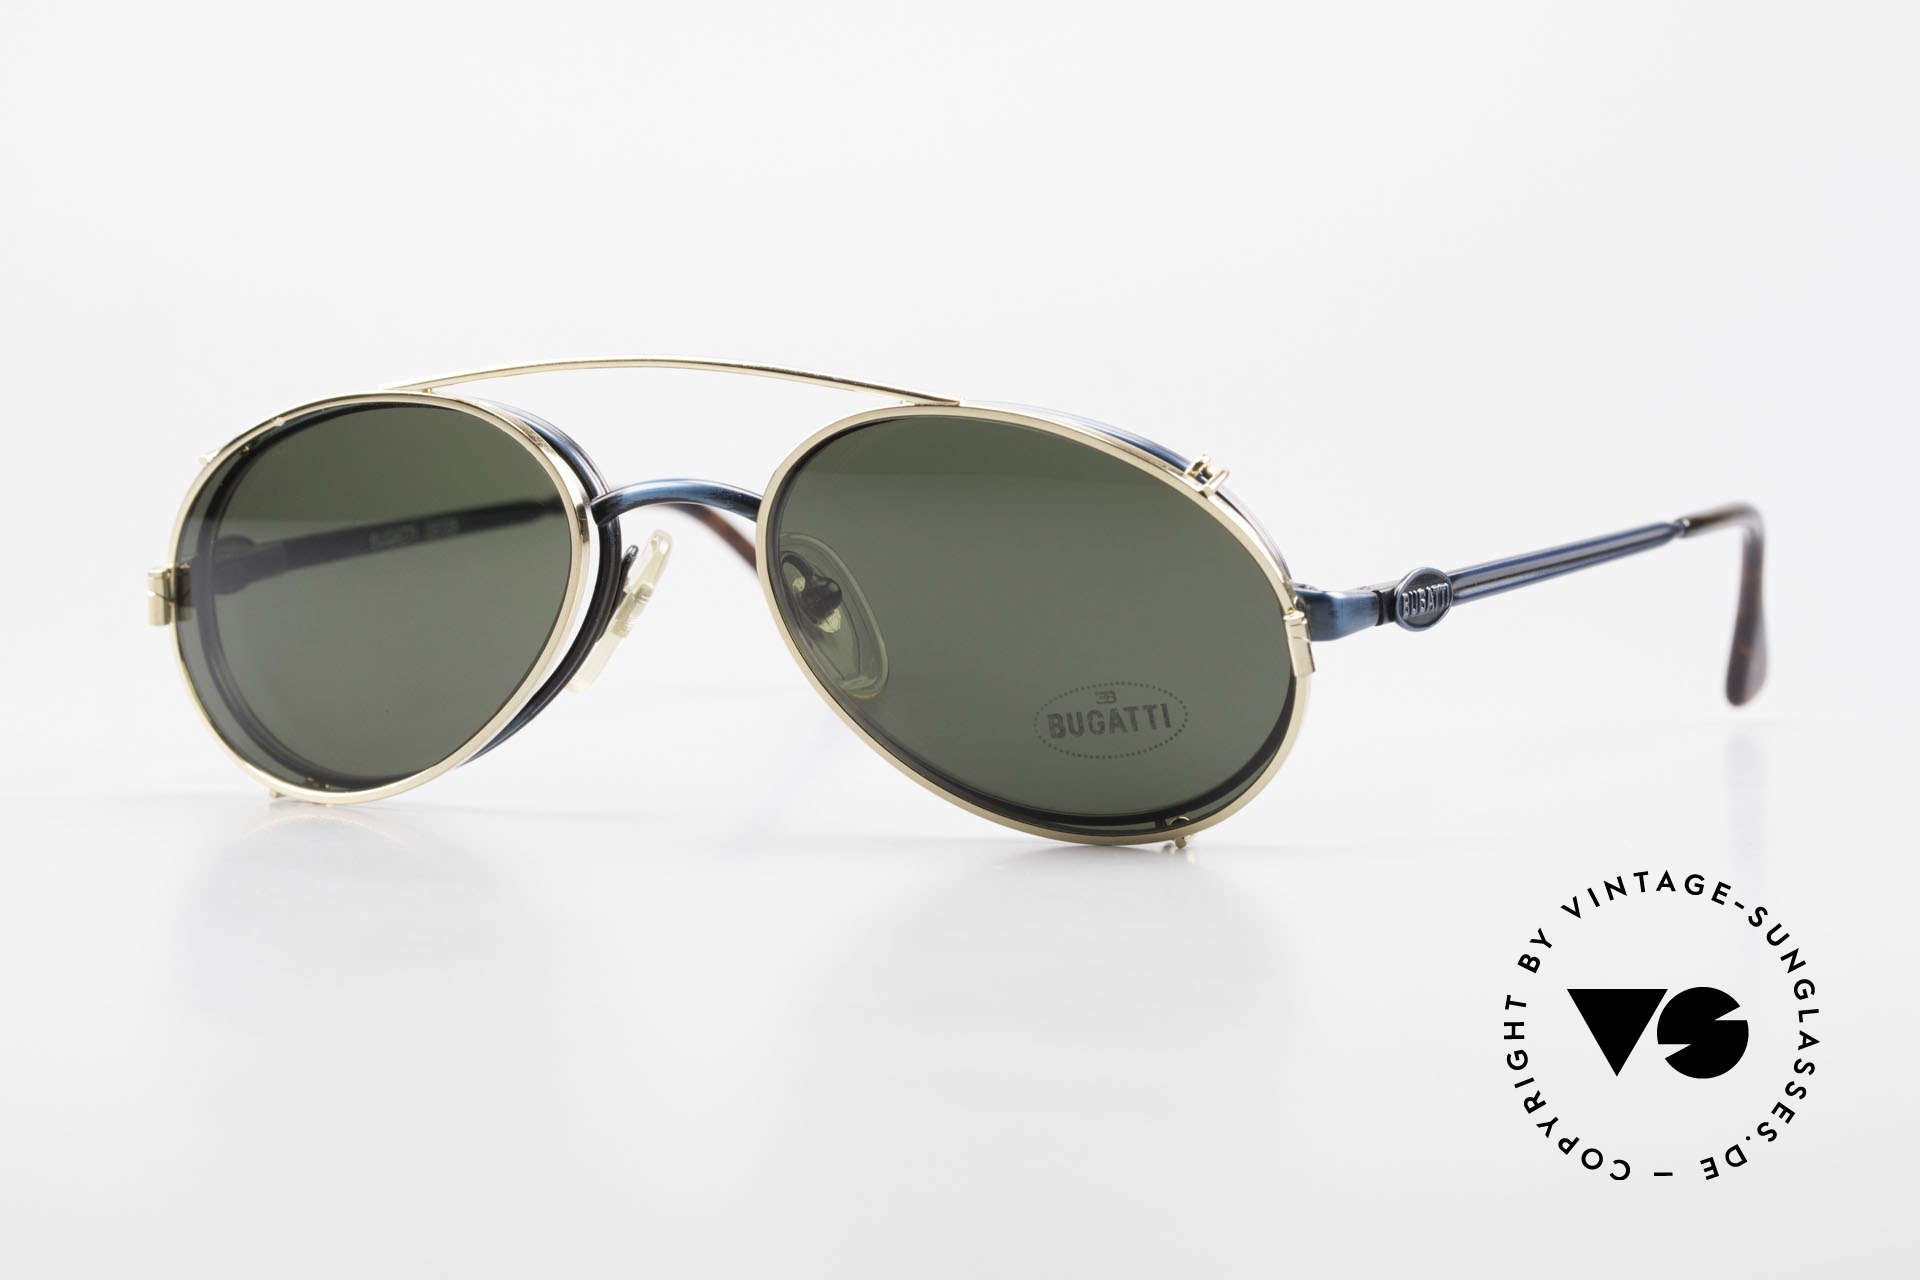 Bugatti 05728 Rare 90's Eyeglasses Clip On, very stylish Bugatti vintage eyeglasses from the 90's, Made for Men